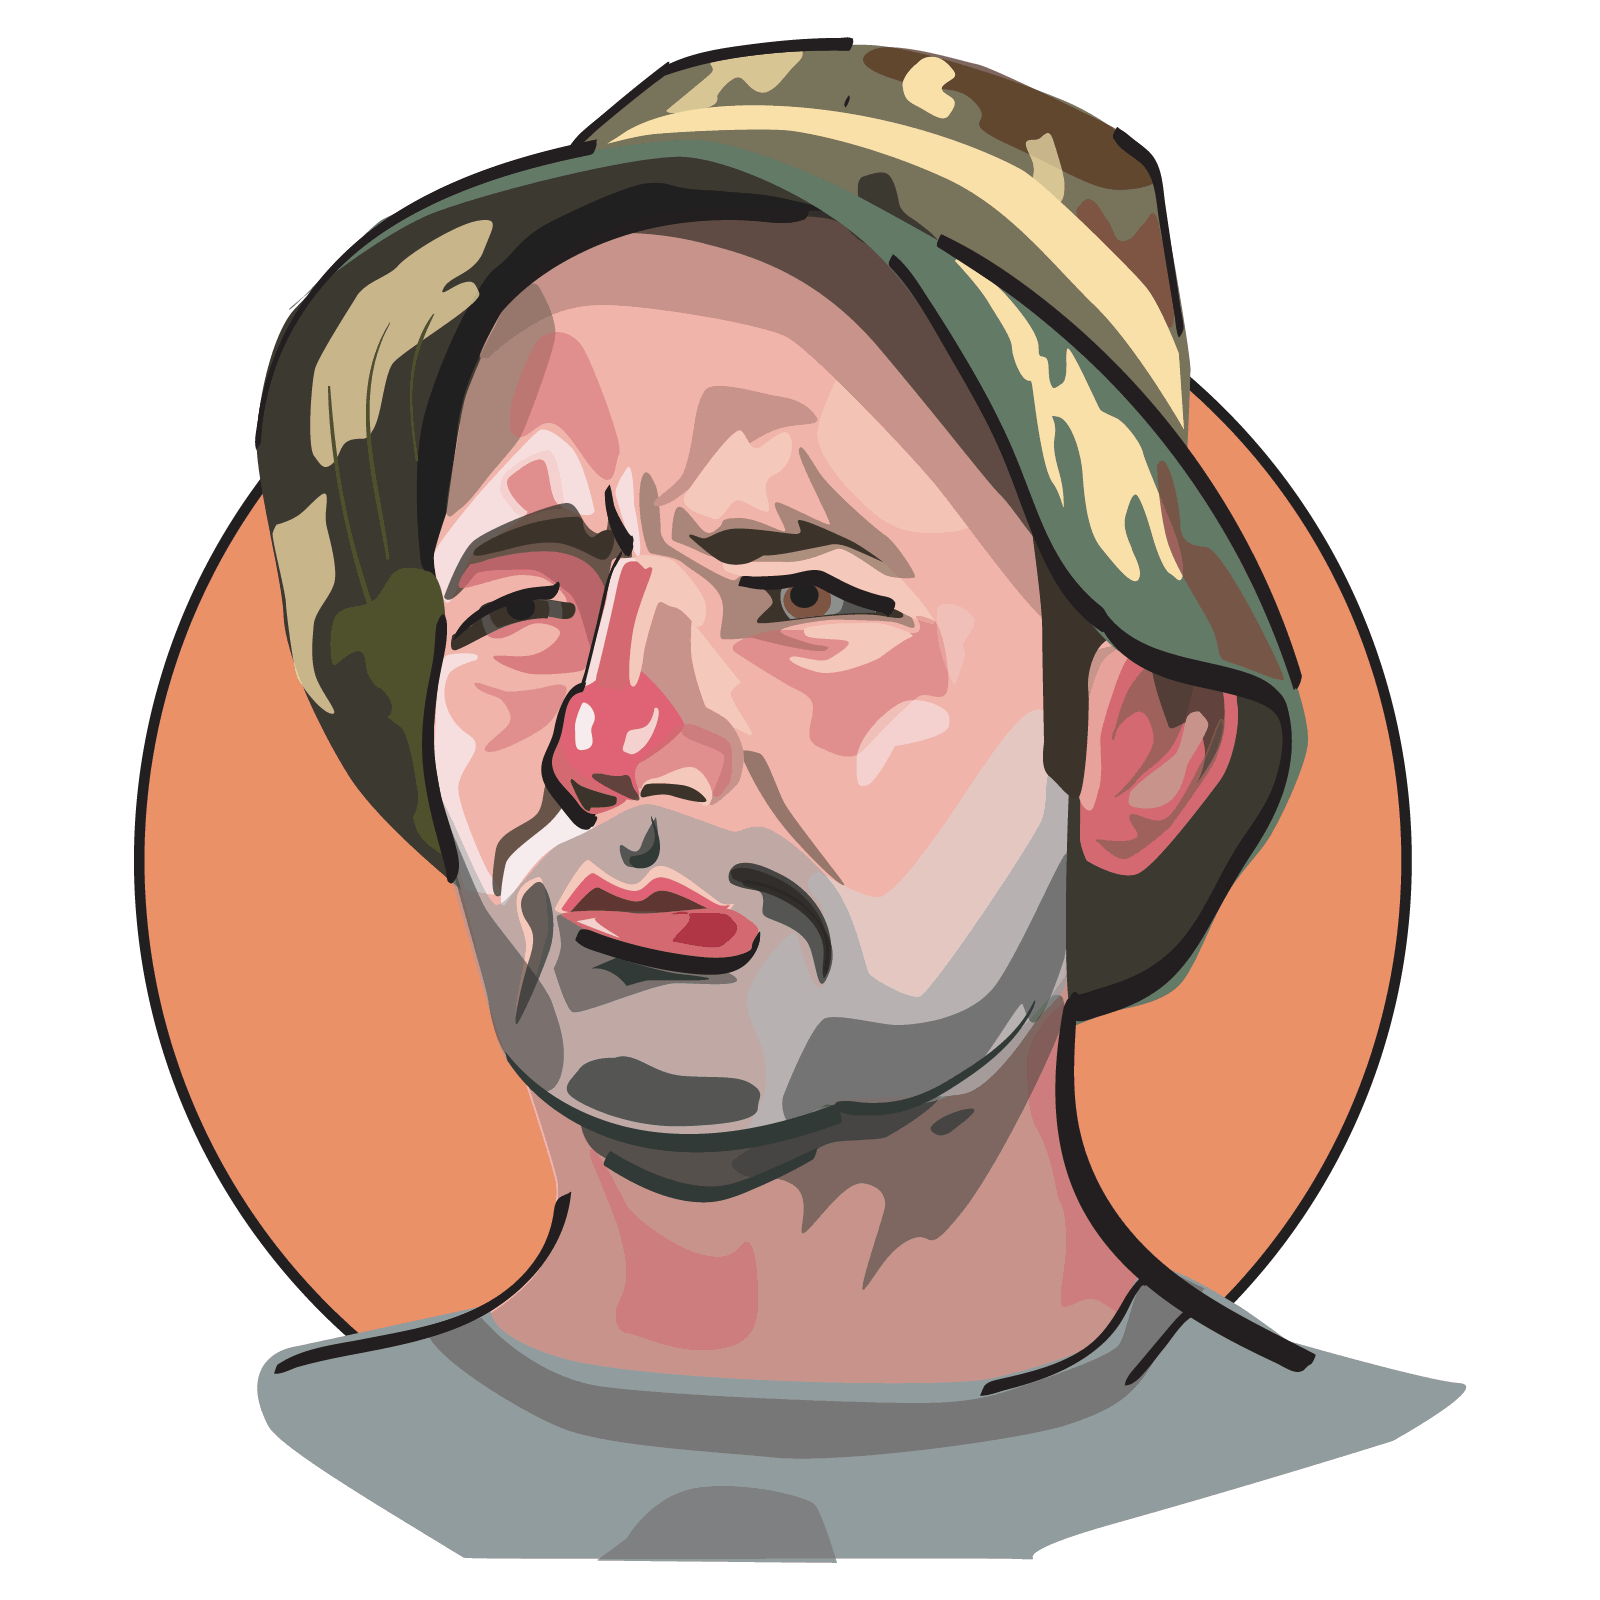 Bill Murray from Caddyshack